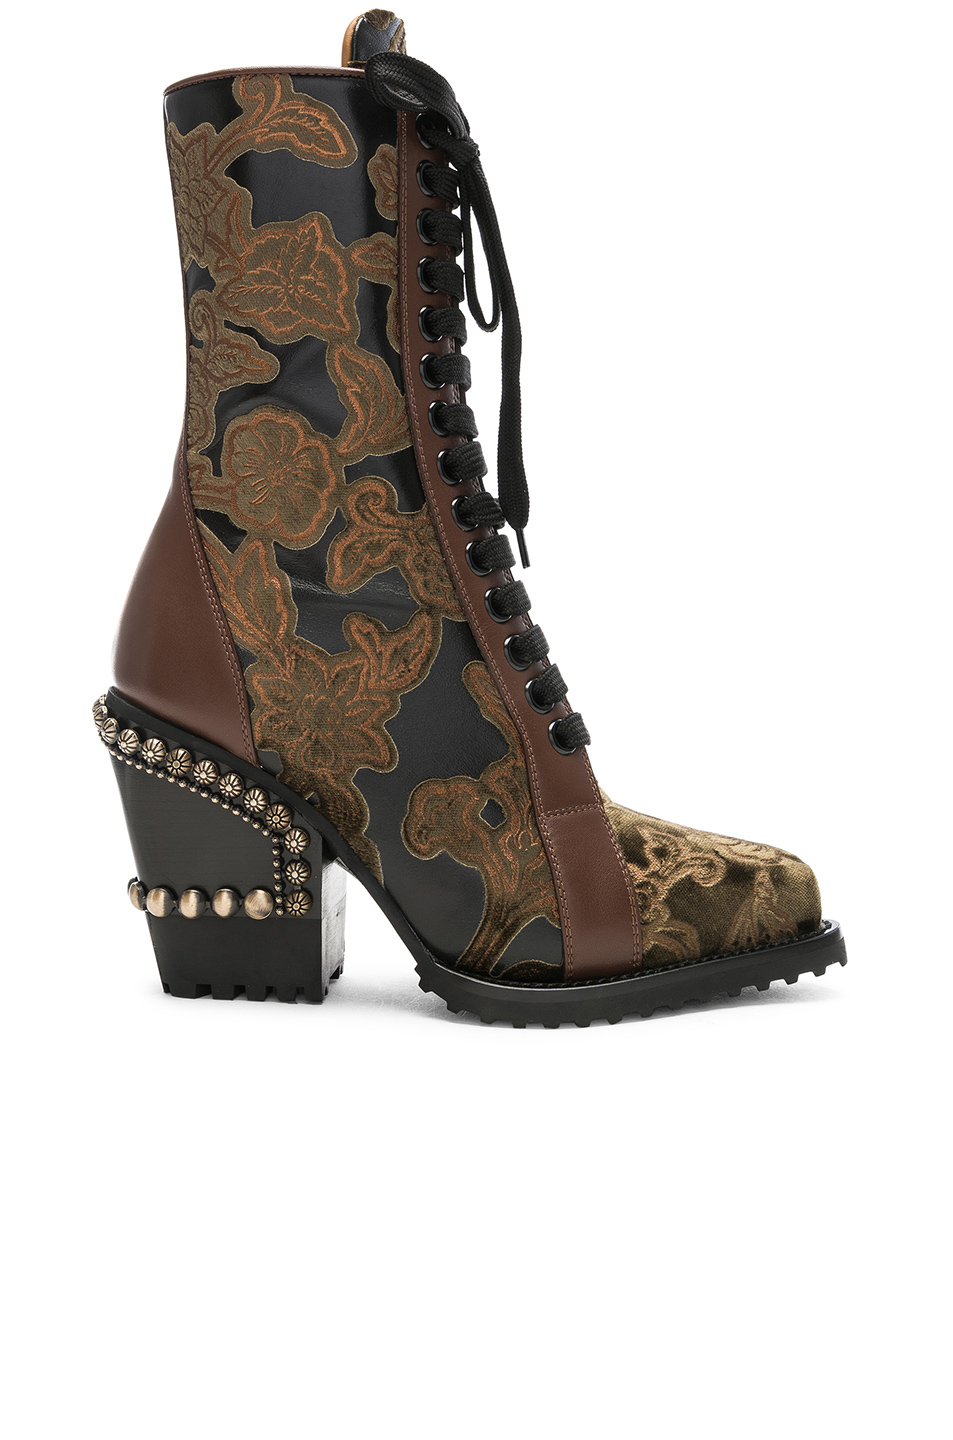 7394b639797fc Buy Original Chloe Rylee Baroque Velvet Lace Up Boots at Indonesia ...